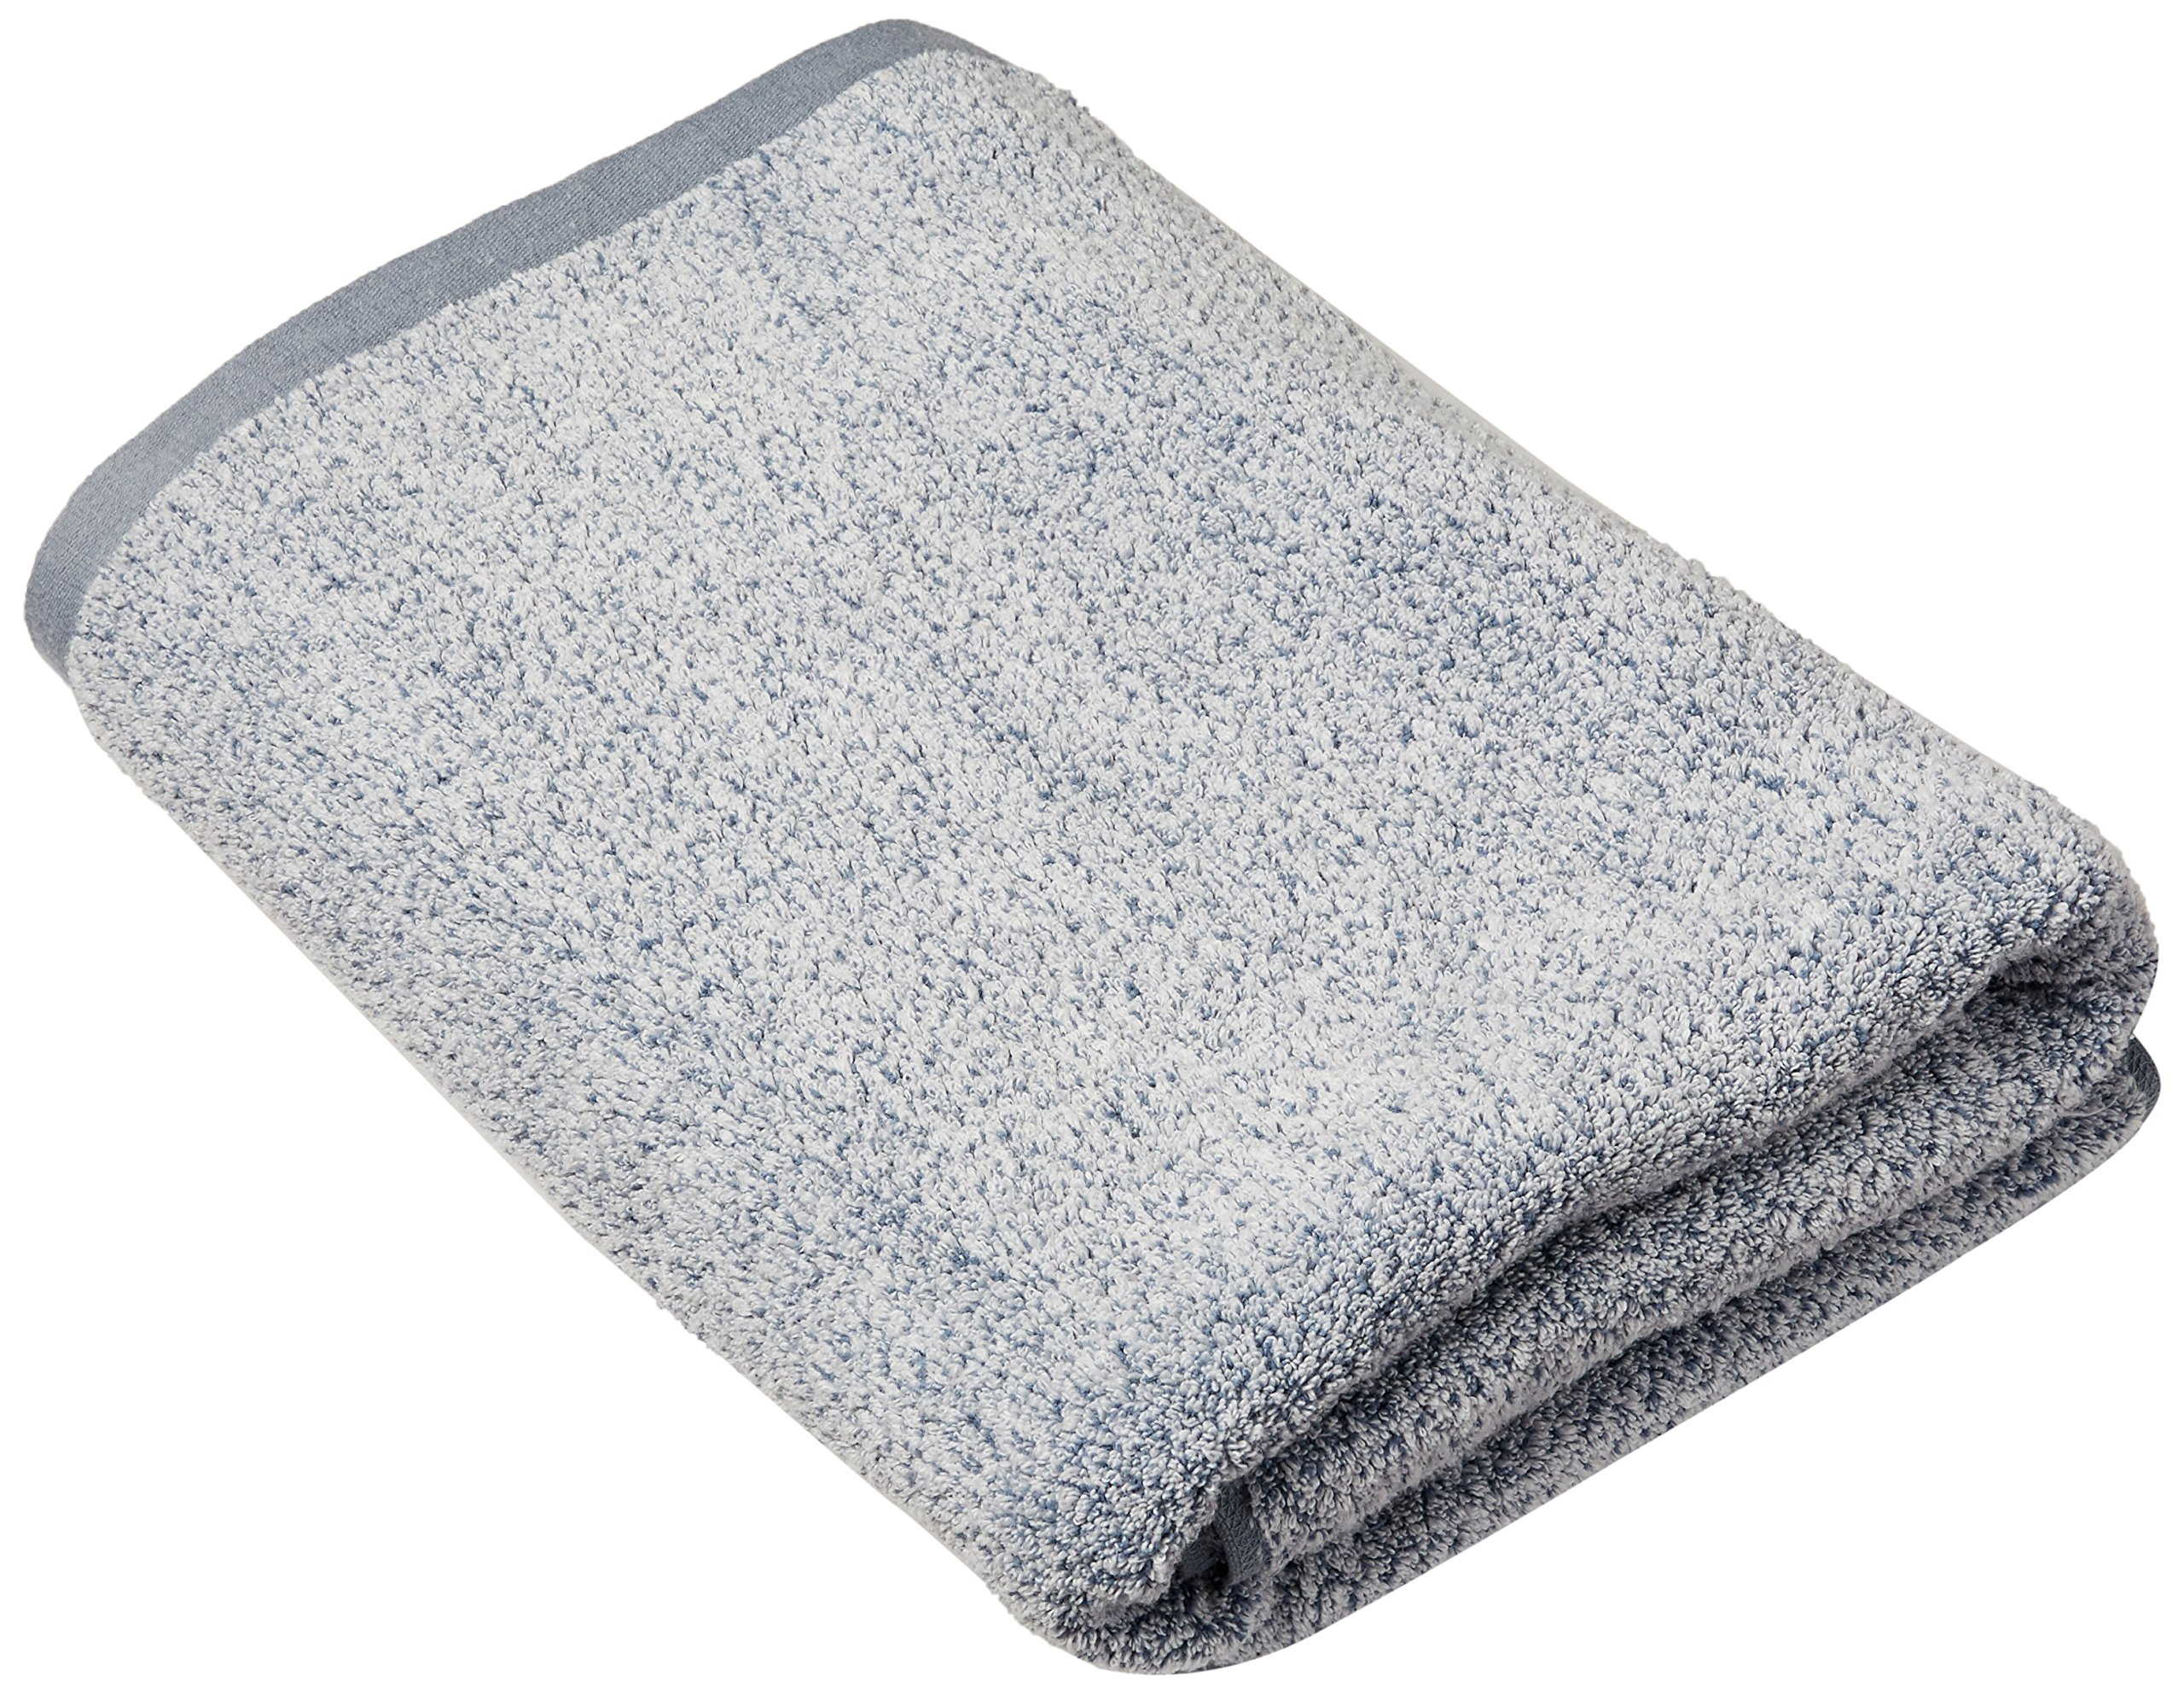 Everplush Diamond Jacquard Bath Sheet in Dusk